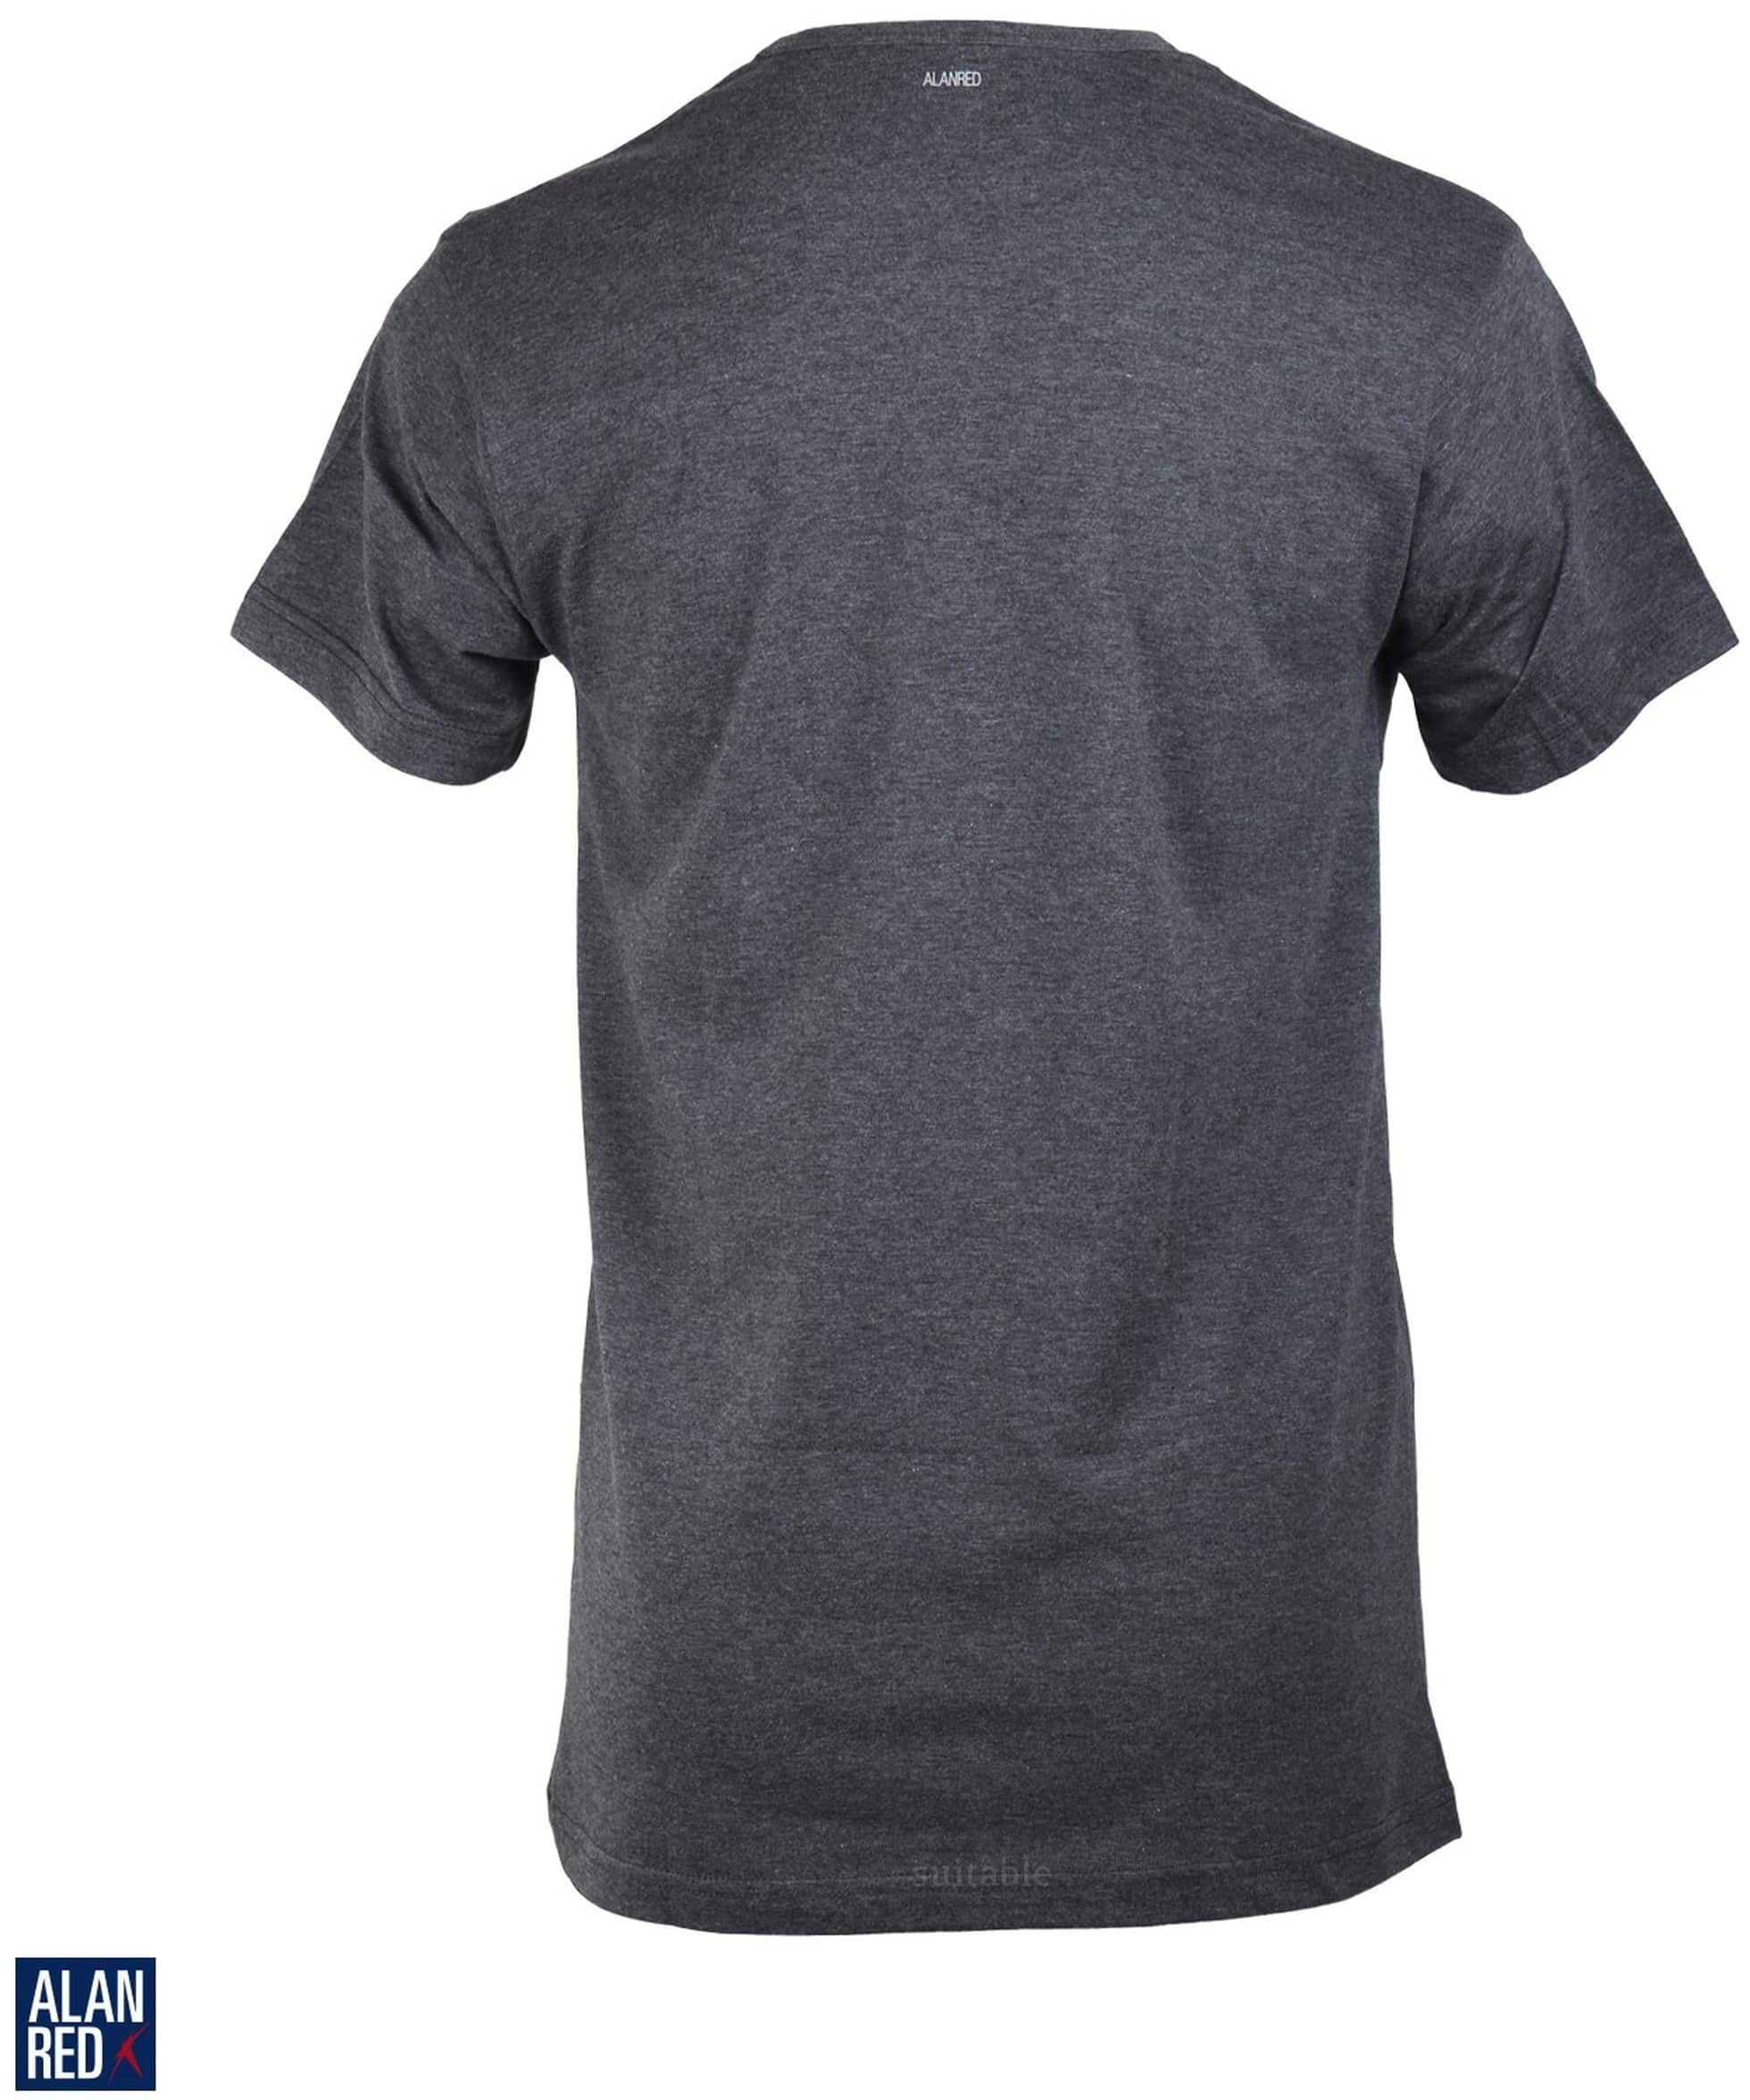 Alan Red Derby O-Hals T-Shirt Antraciet (1Pack) foto 1